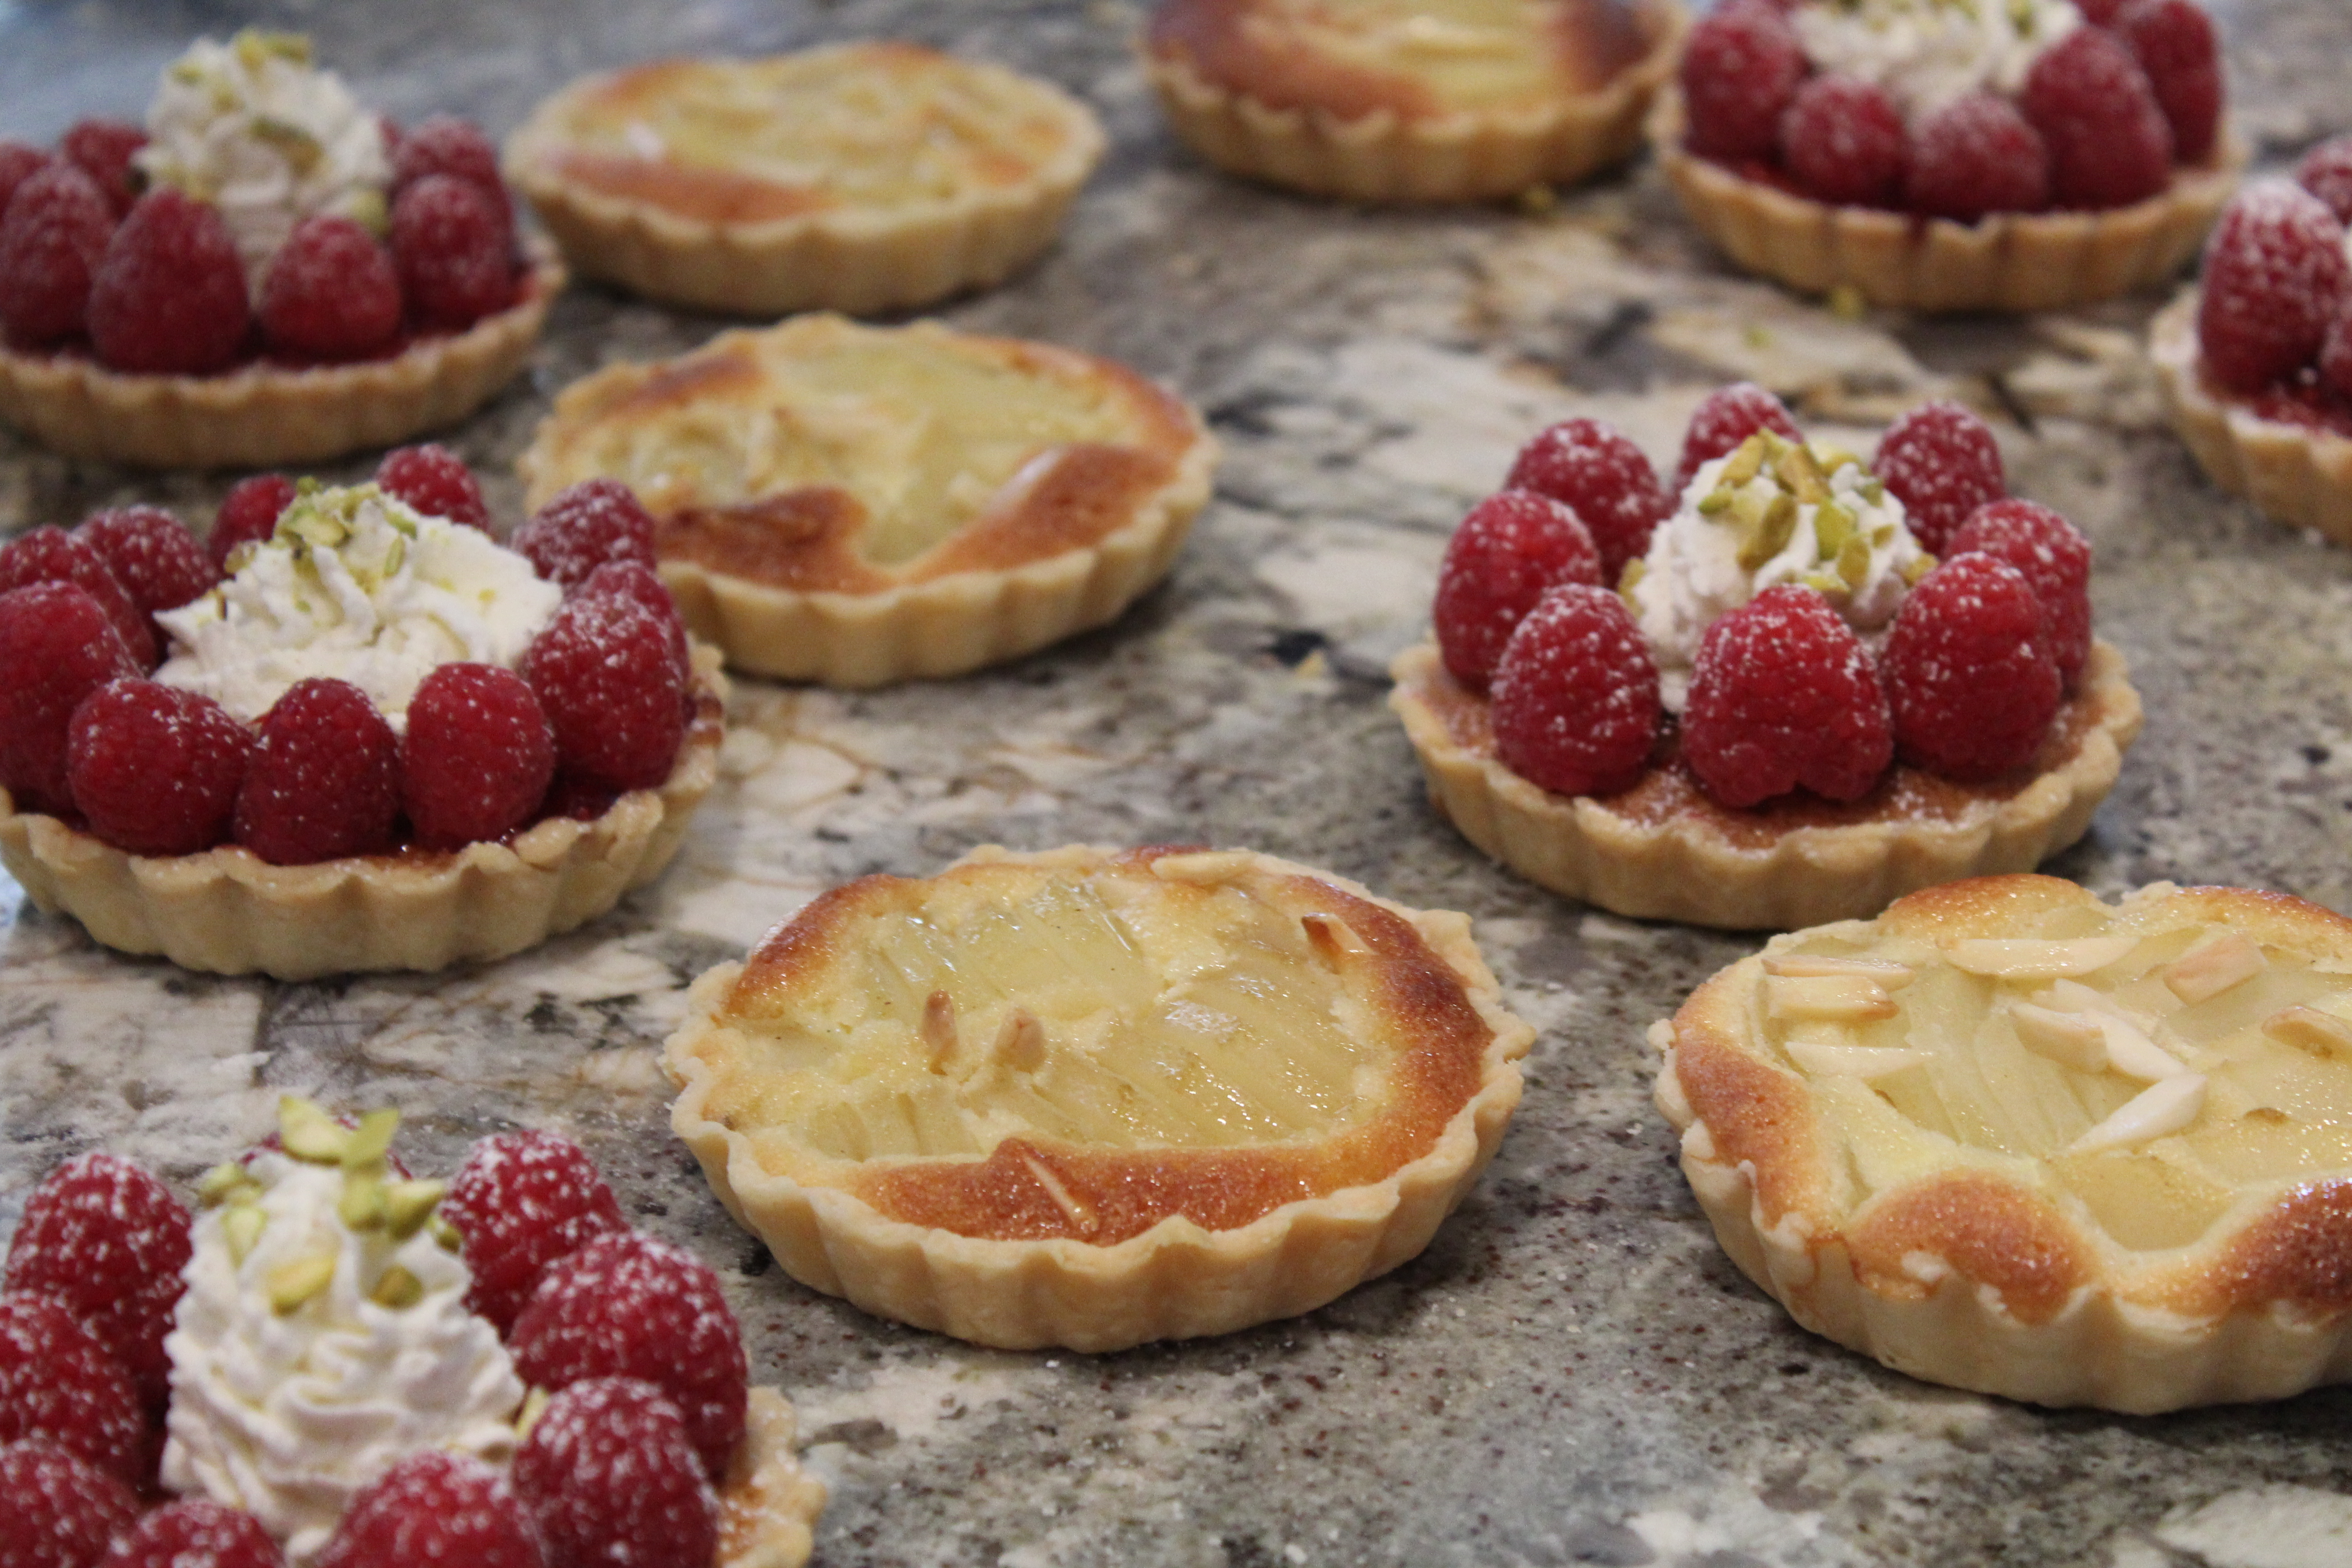 French Pastry Class: Say Bonjour to Classic Sweet Treats! - Life in the Bay